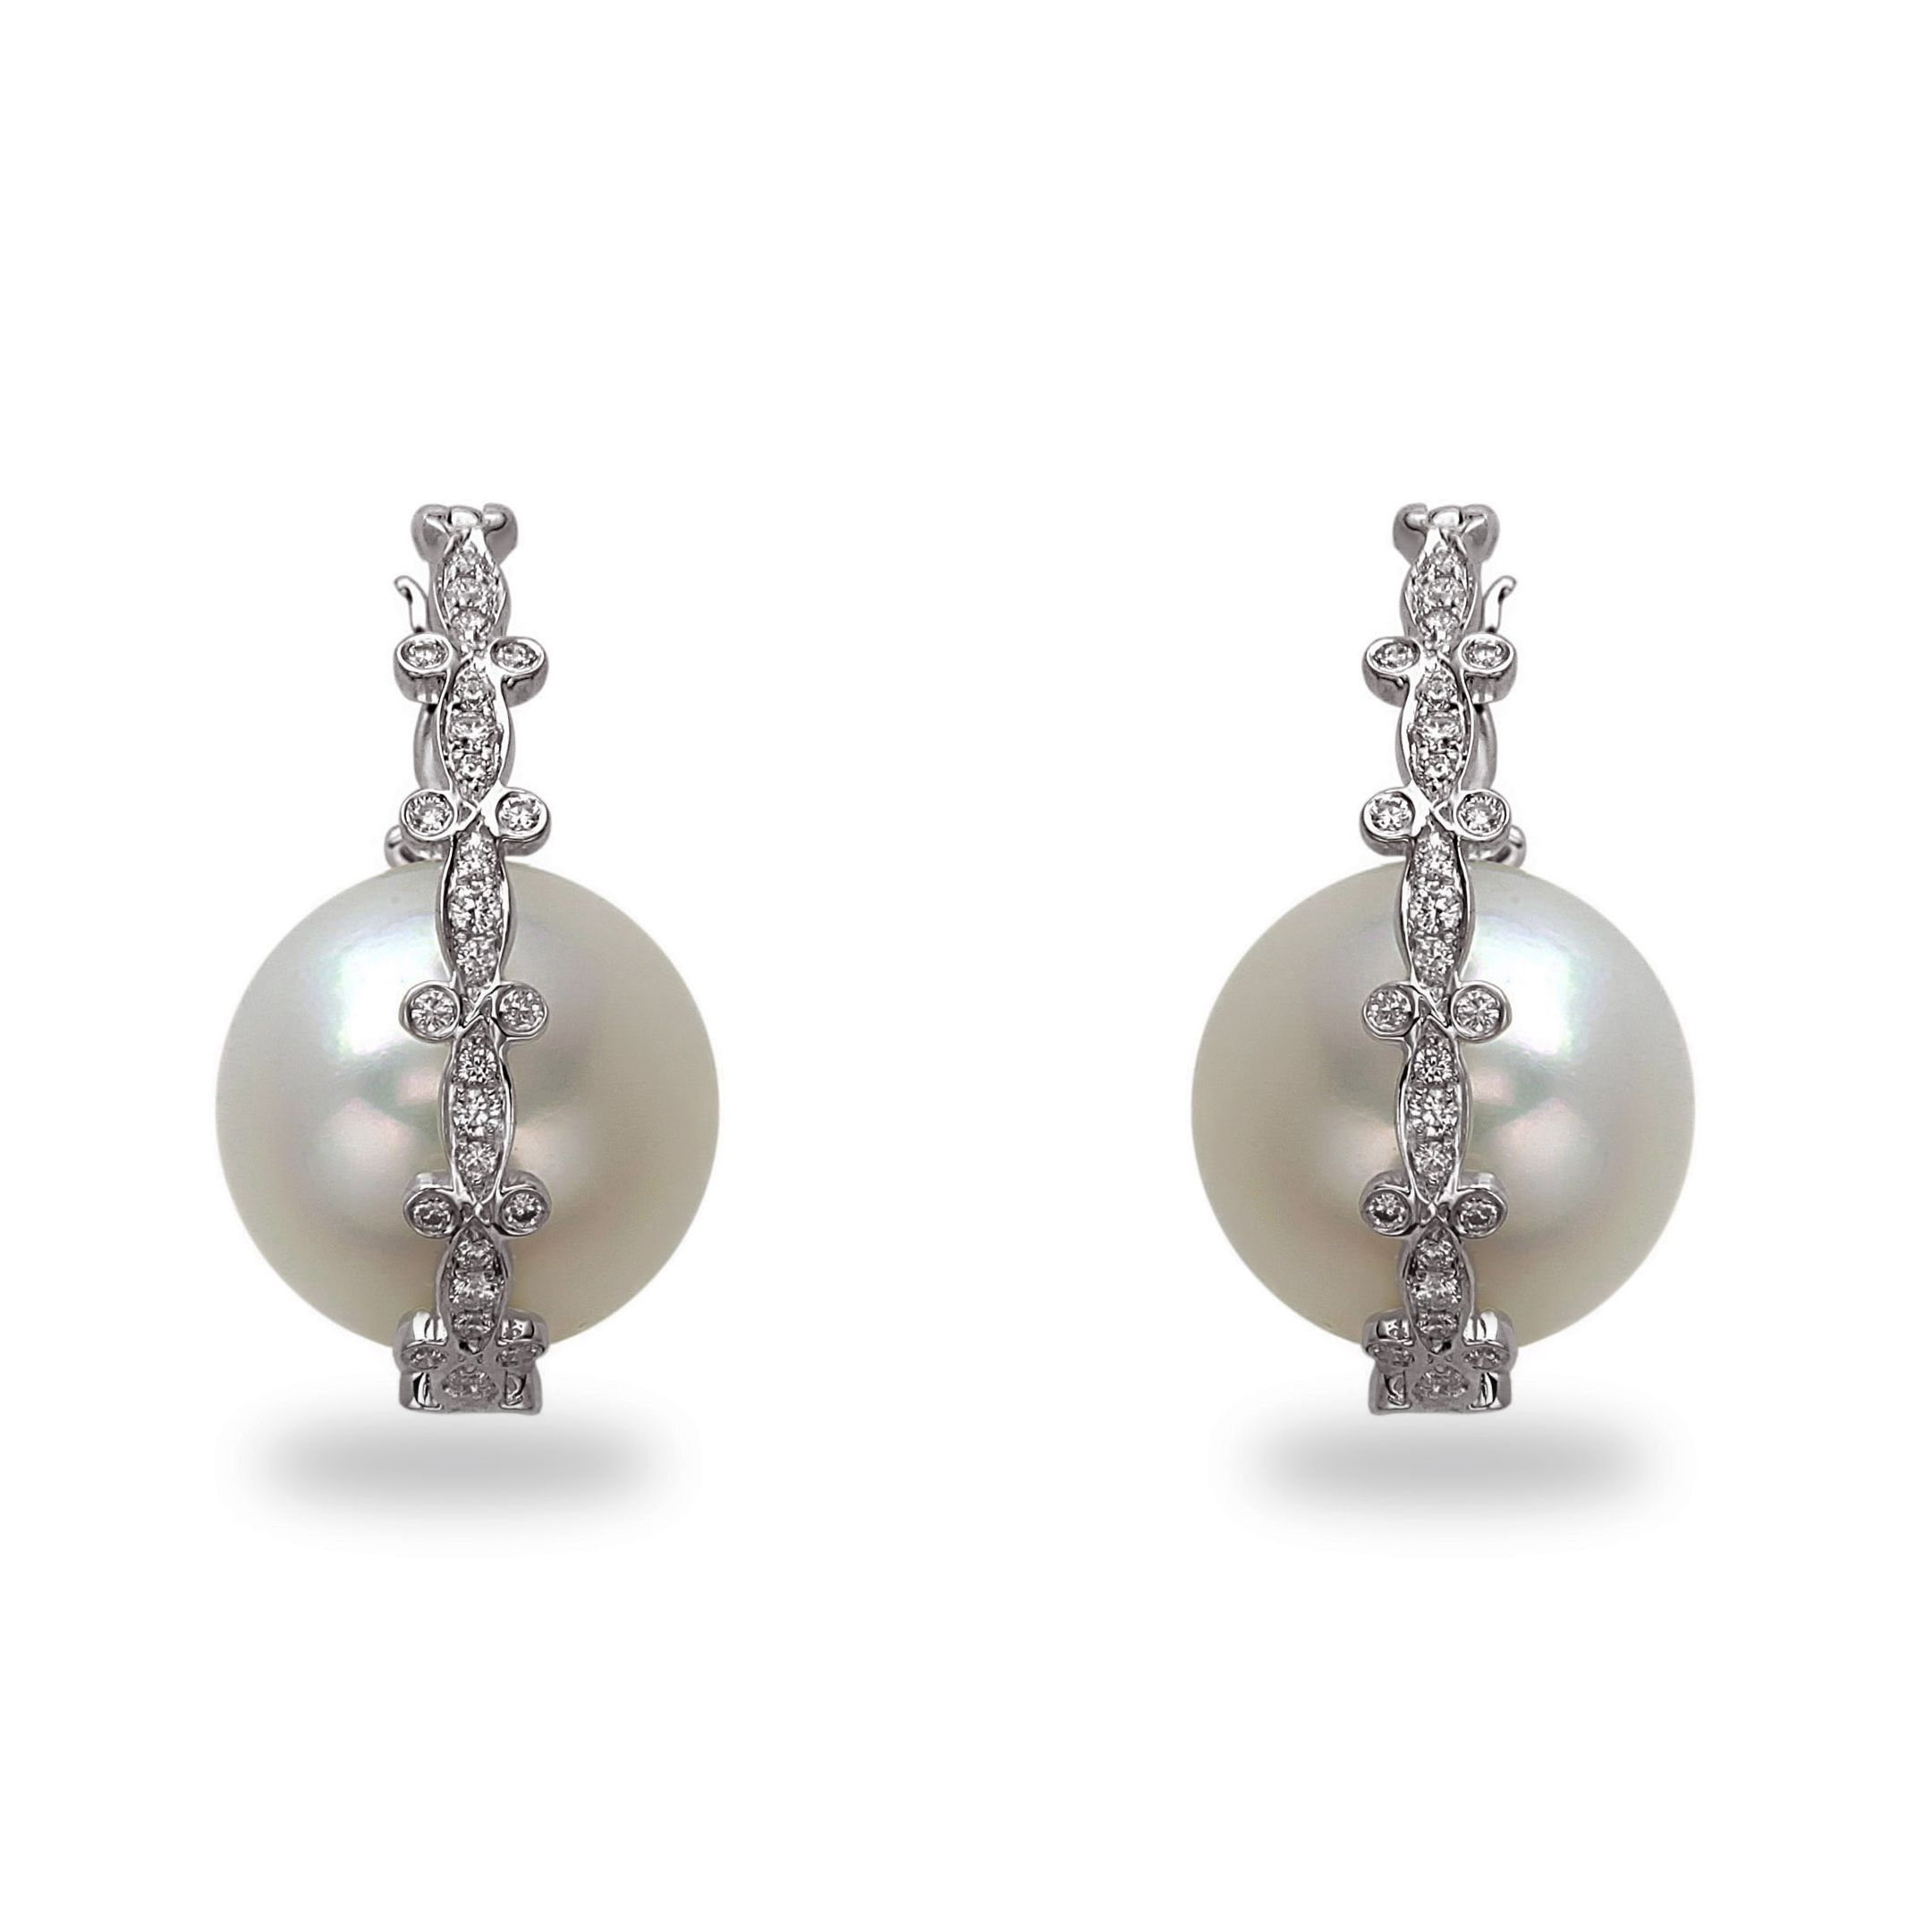 Tara pearls galaxy collection white south sea pearl earrings set on